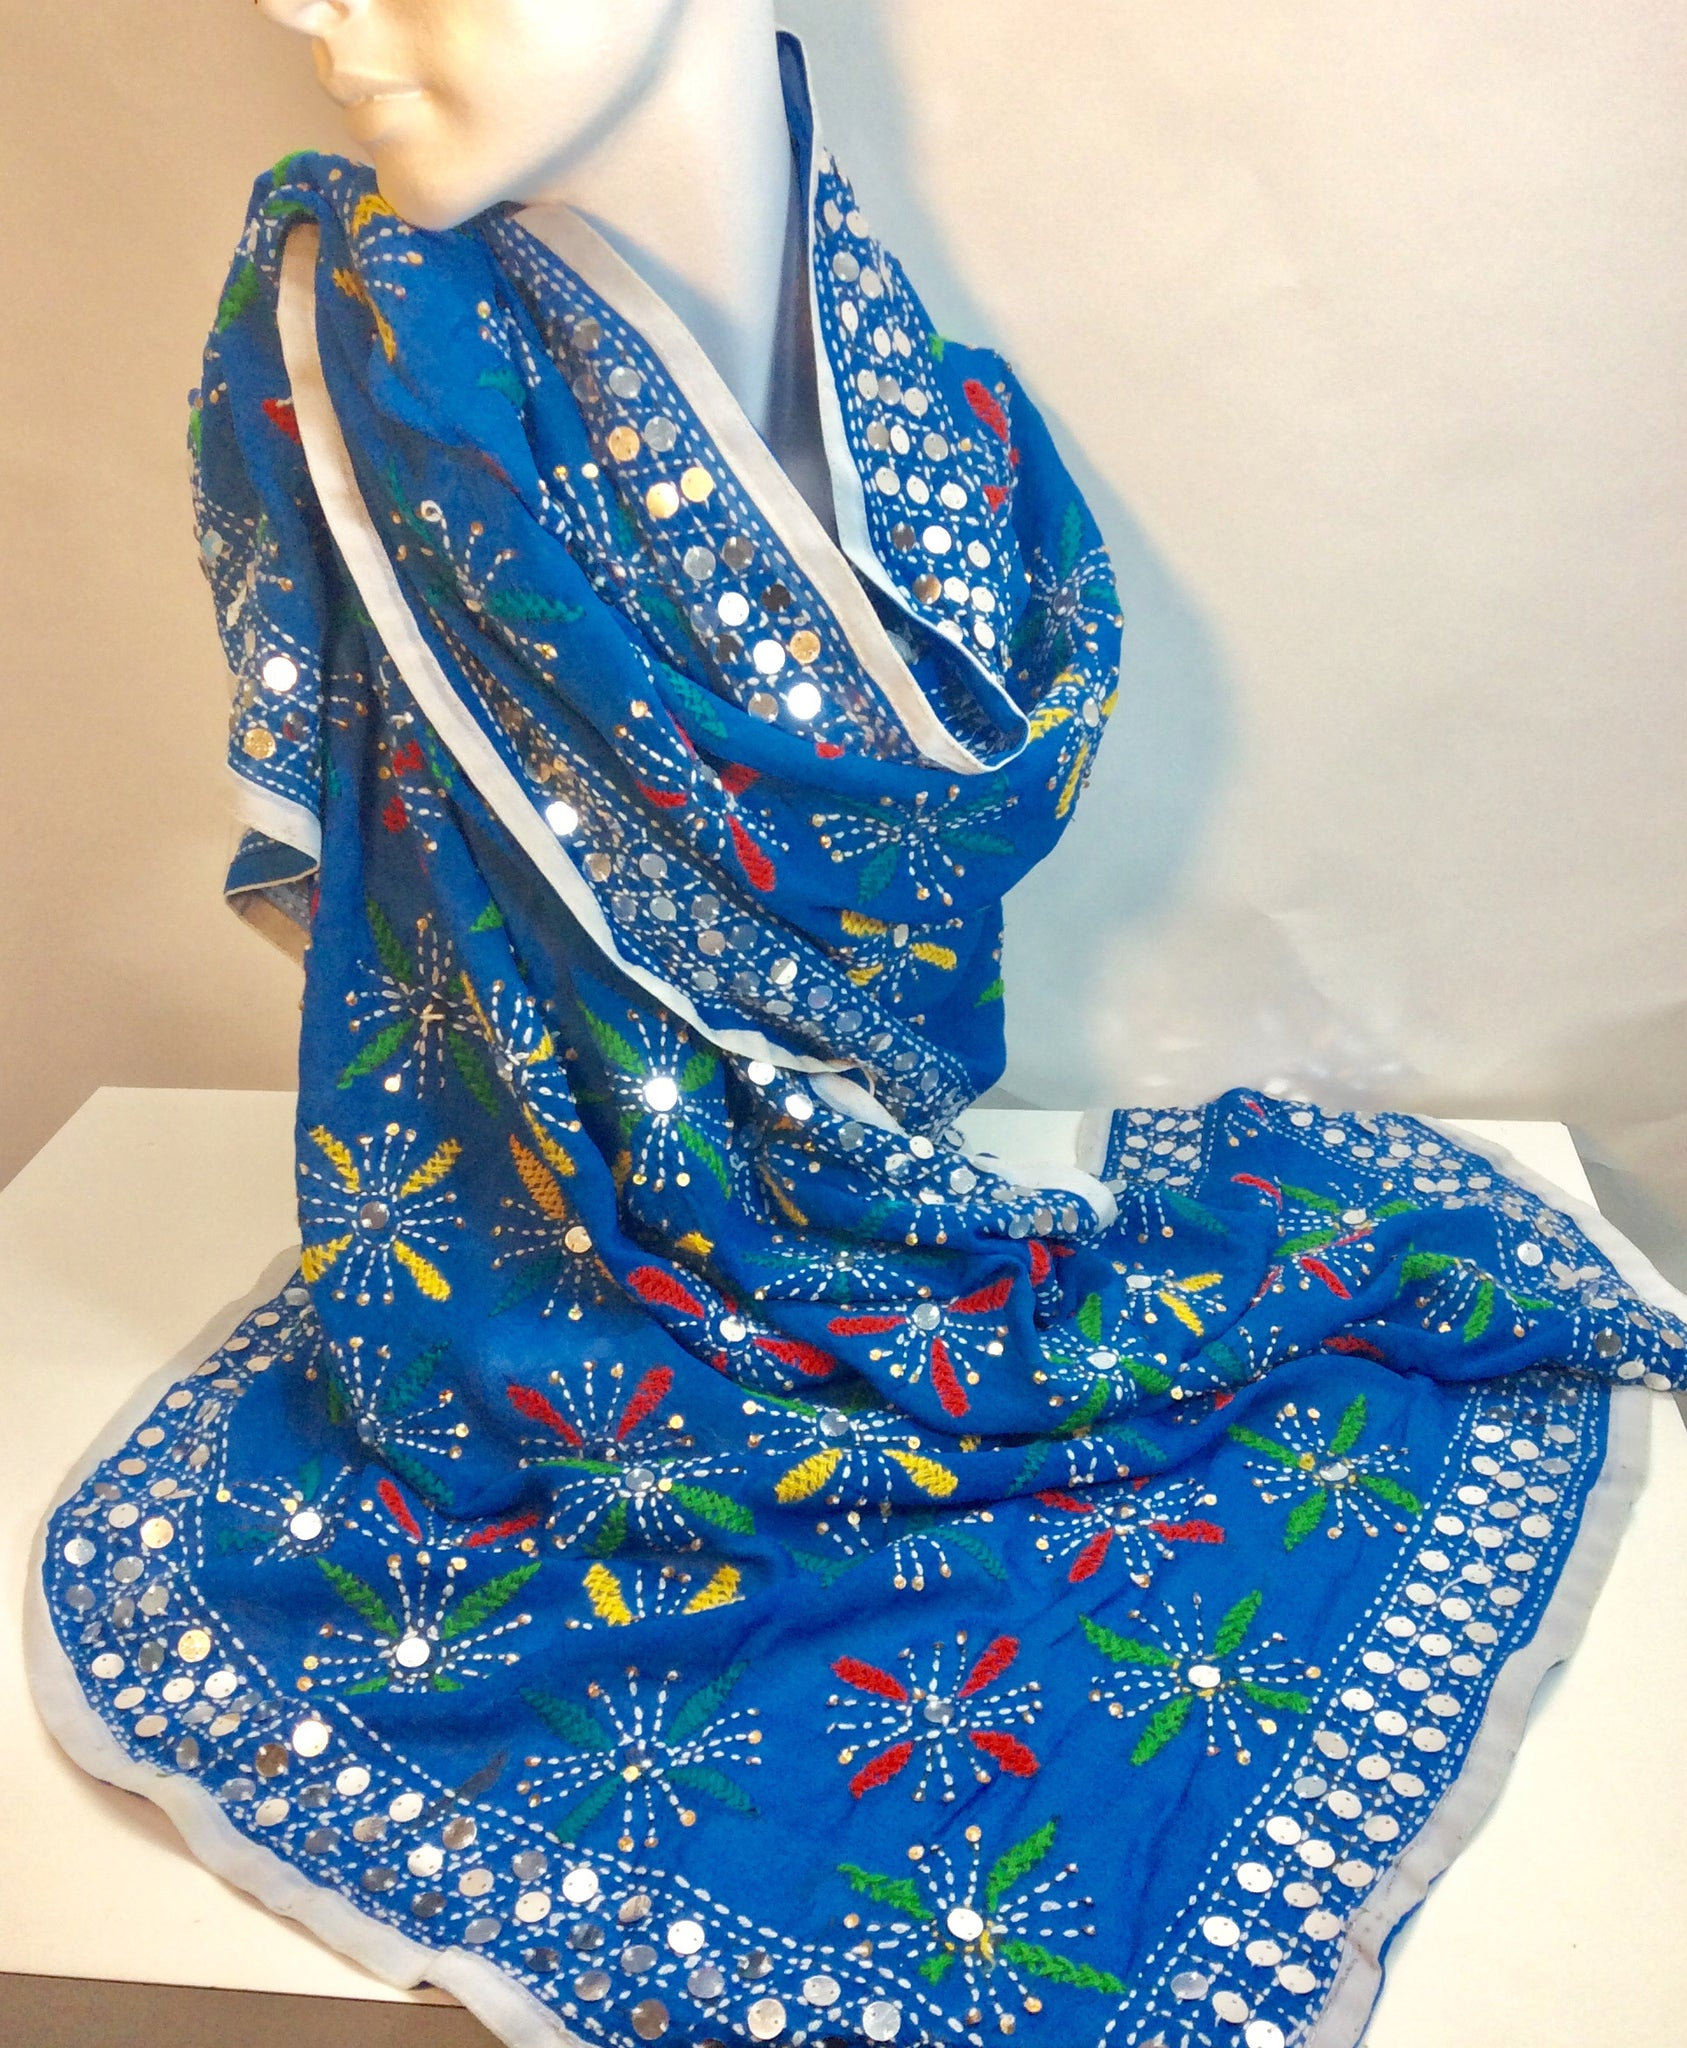 Gorgeous vibrant blue embroidered and sequinned Indian silk wrap scarf